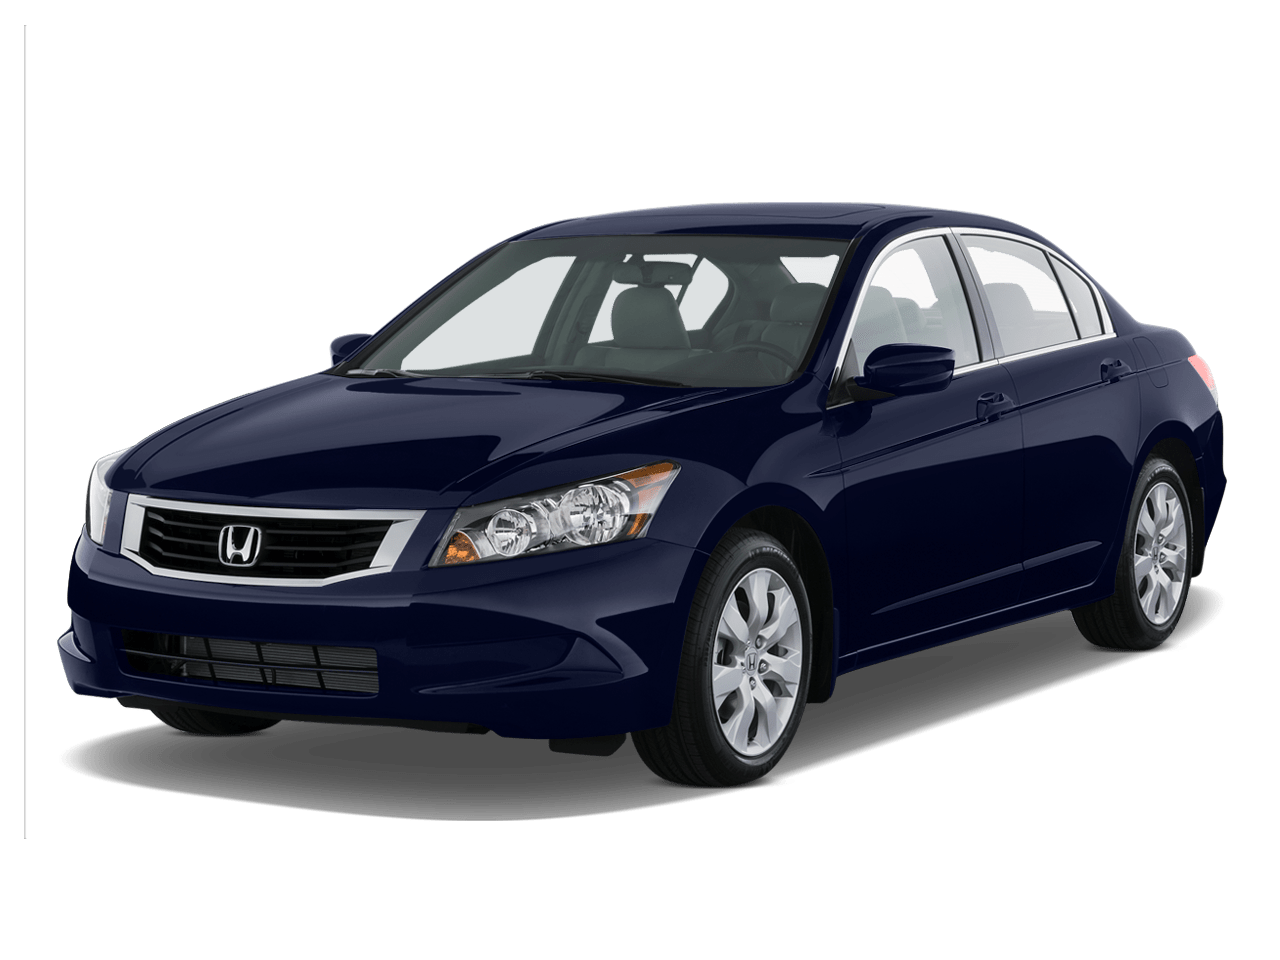 hight resolution of 2008 honda accord reviews research accord prices u0026 specs motortrend 2008 honda accord rims 2008